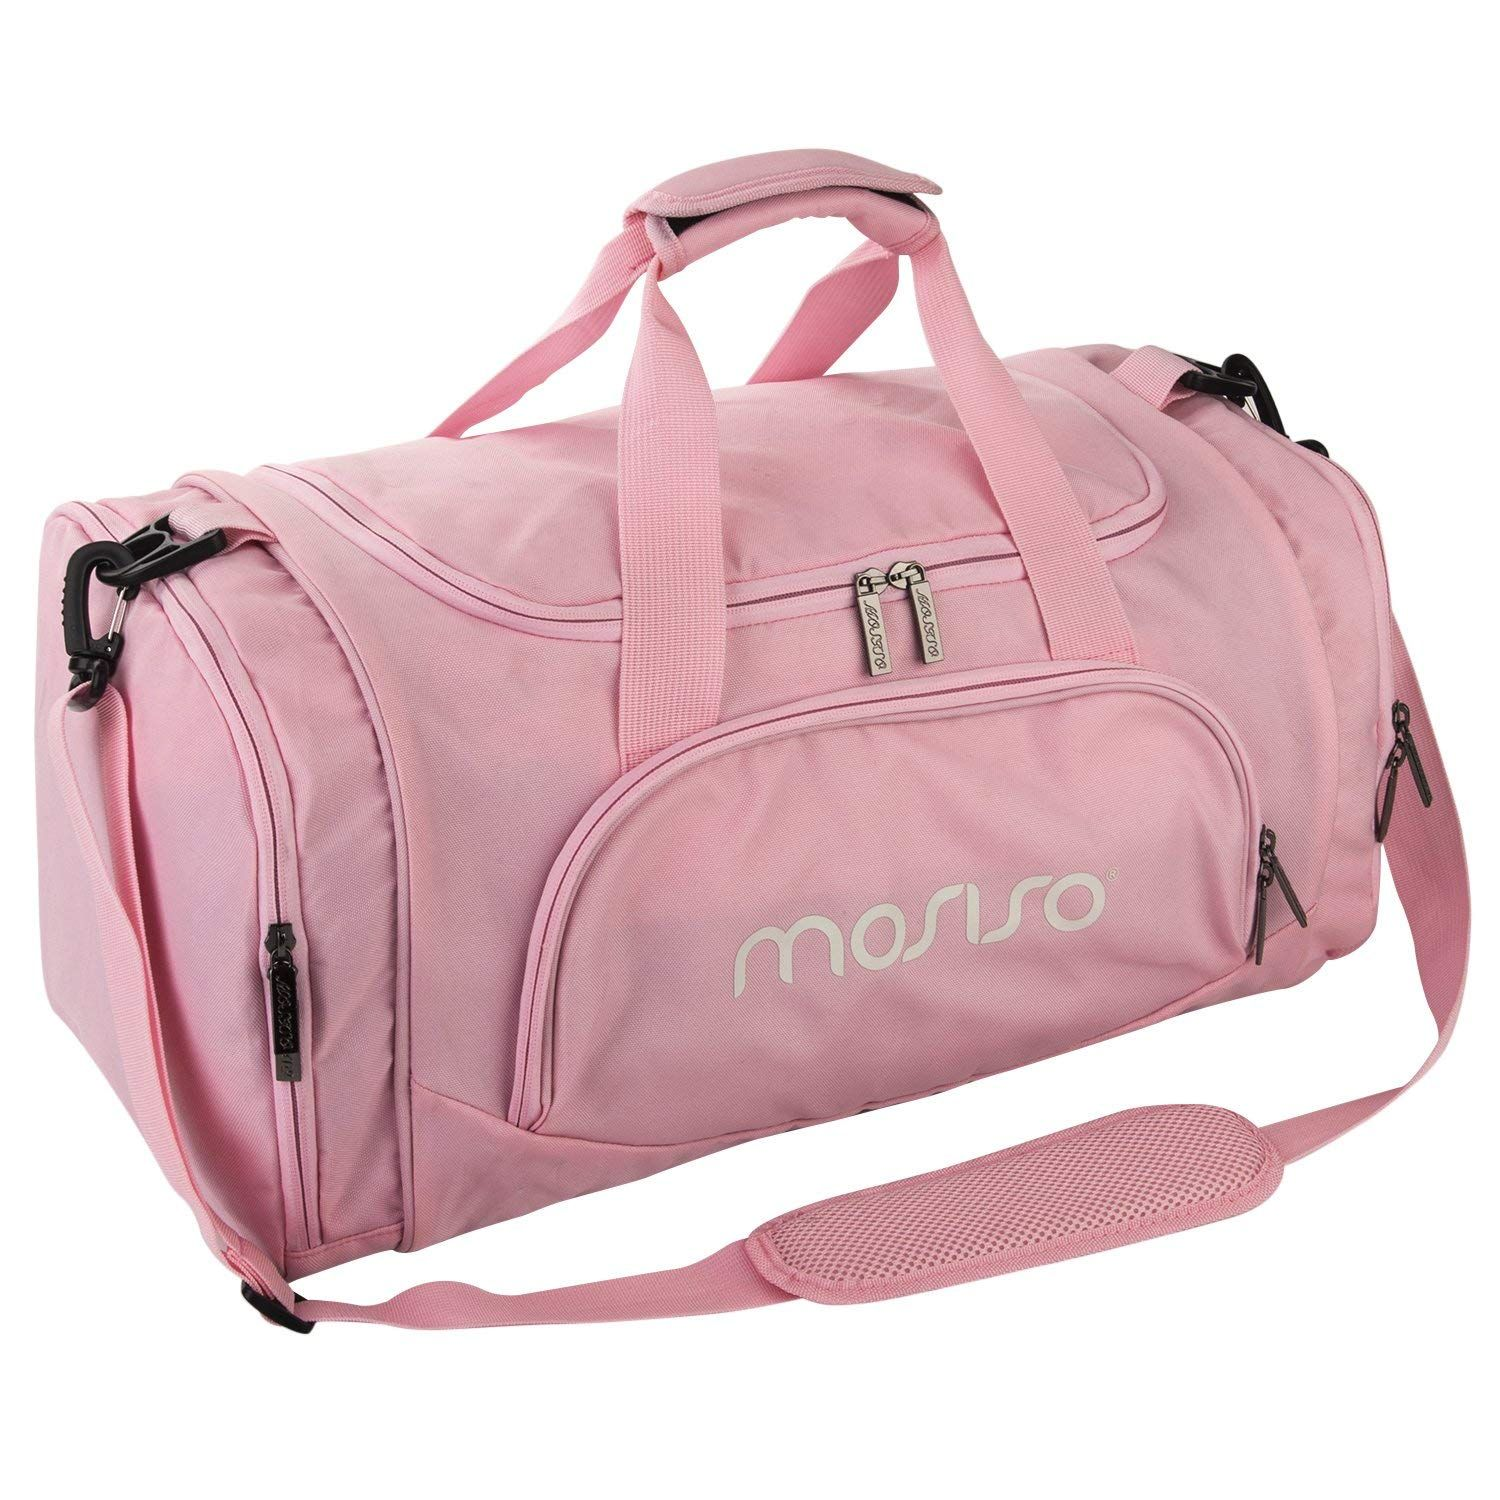 4fd5508aa825 MOSISO Polyester Fabric Foldable Gym Bag Sports Travel Overnight ...